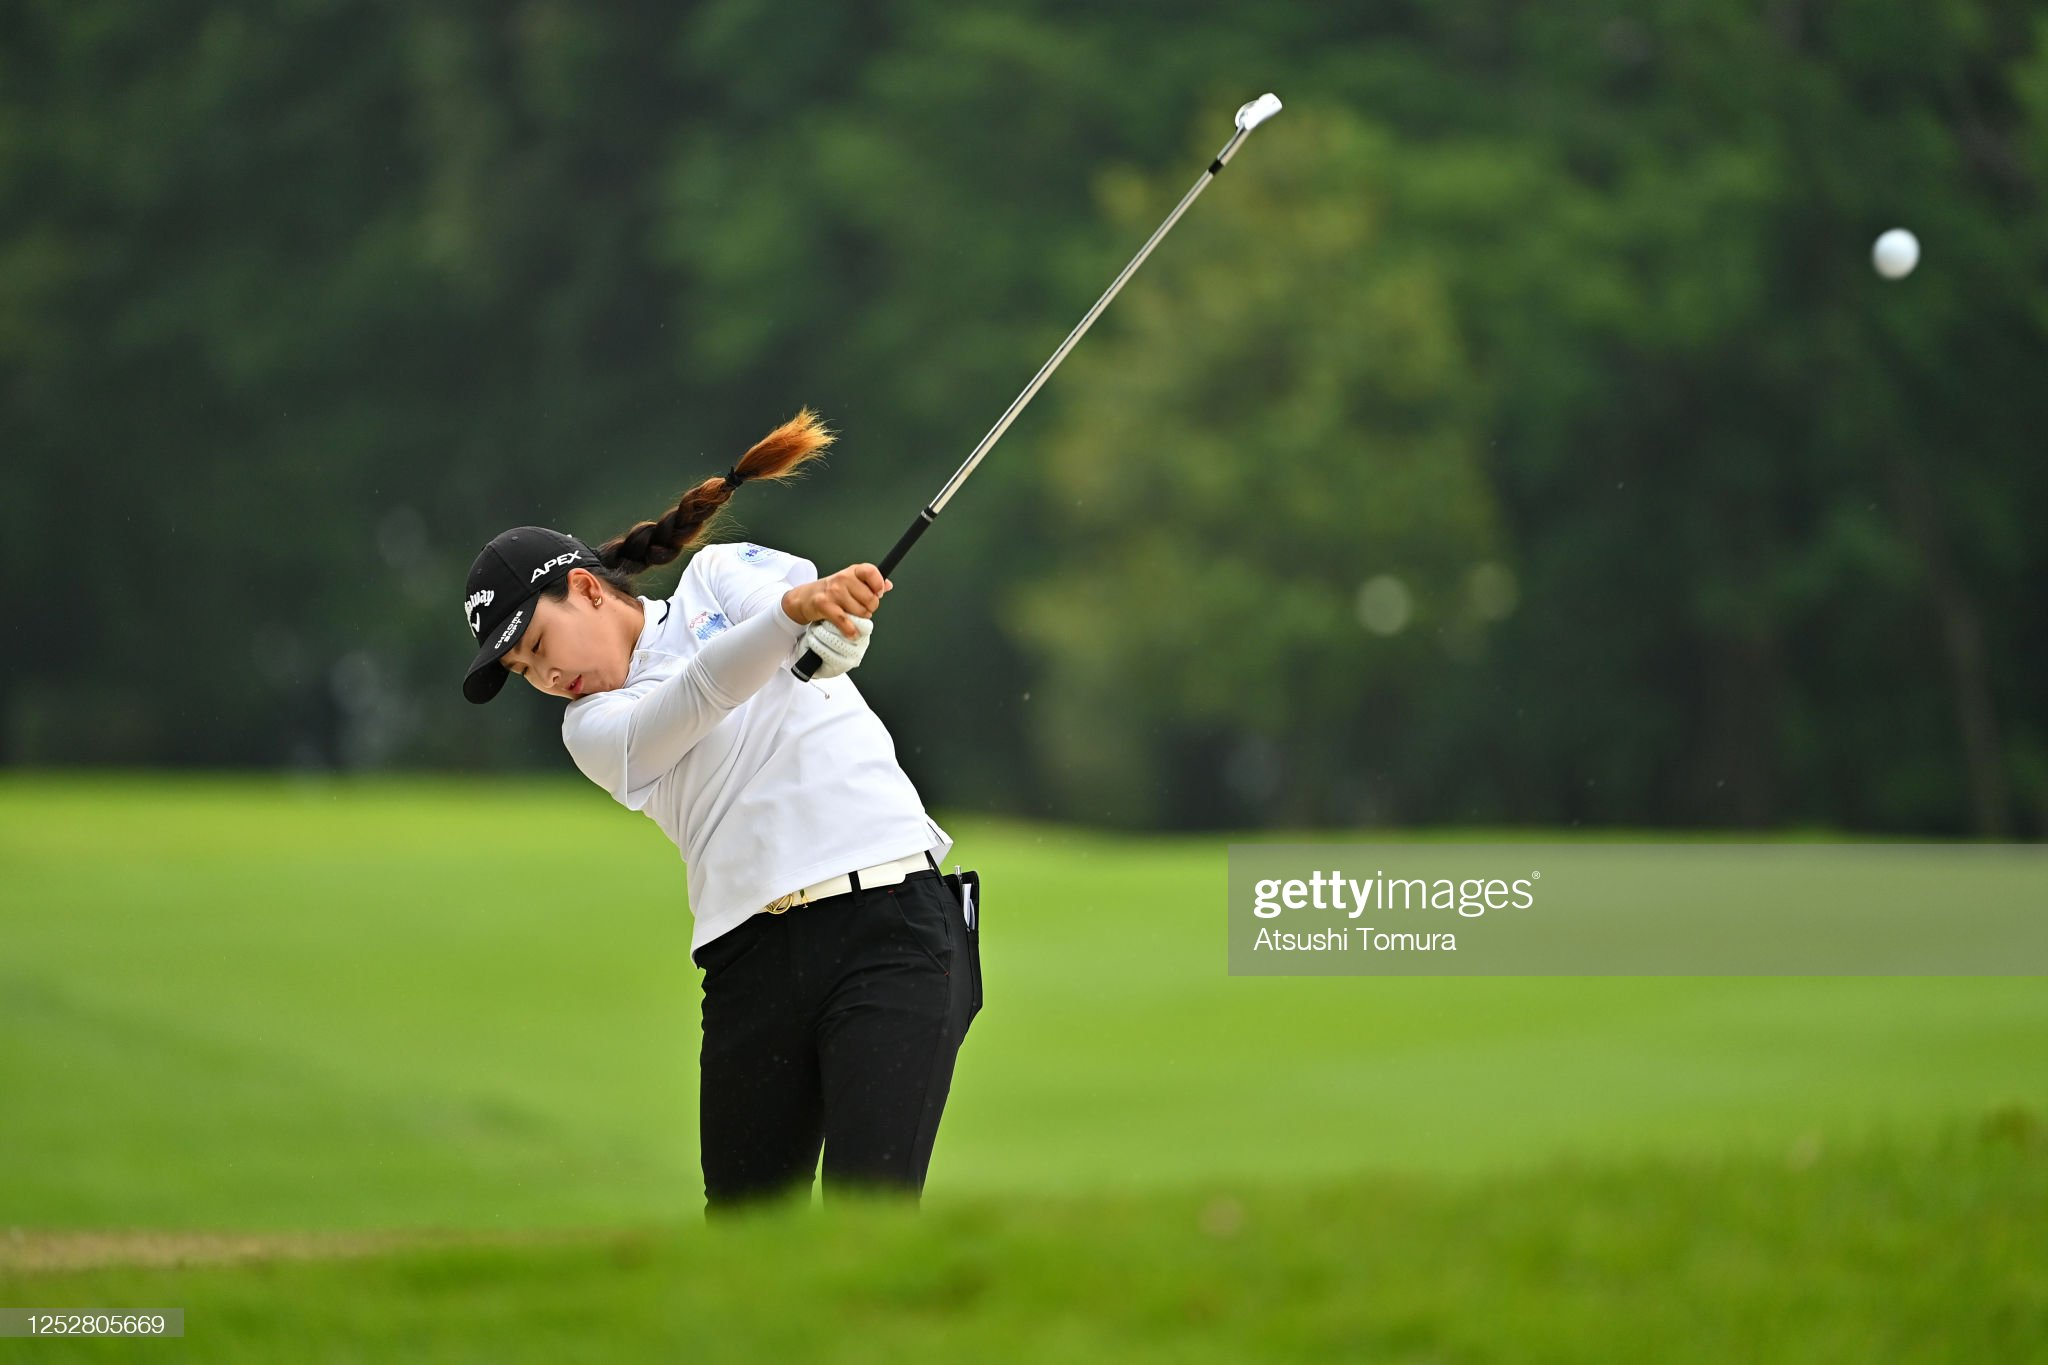 https://media.gettyimages.com/photos/hana-lee-of-south-korea-hits-her-second-shot-on-the-12th-hole-during-picture-id1252805669?s=2048x2048